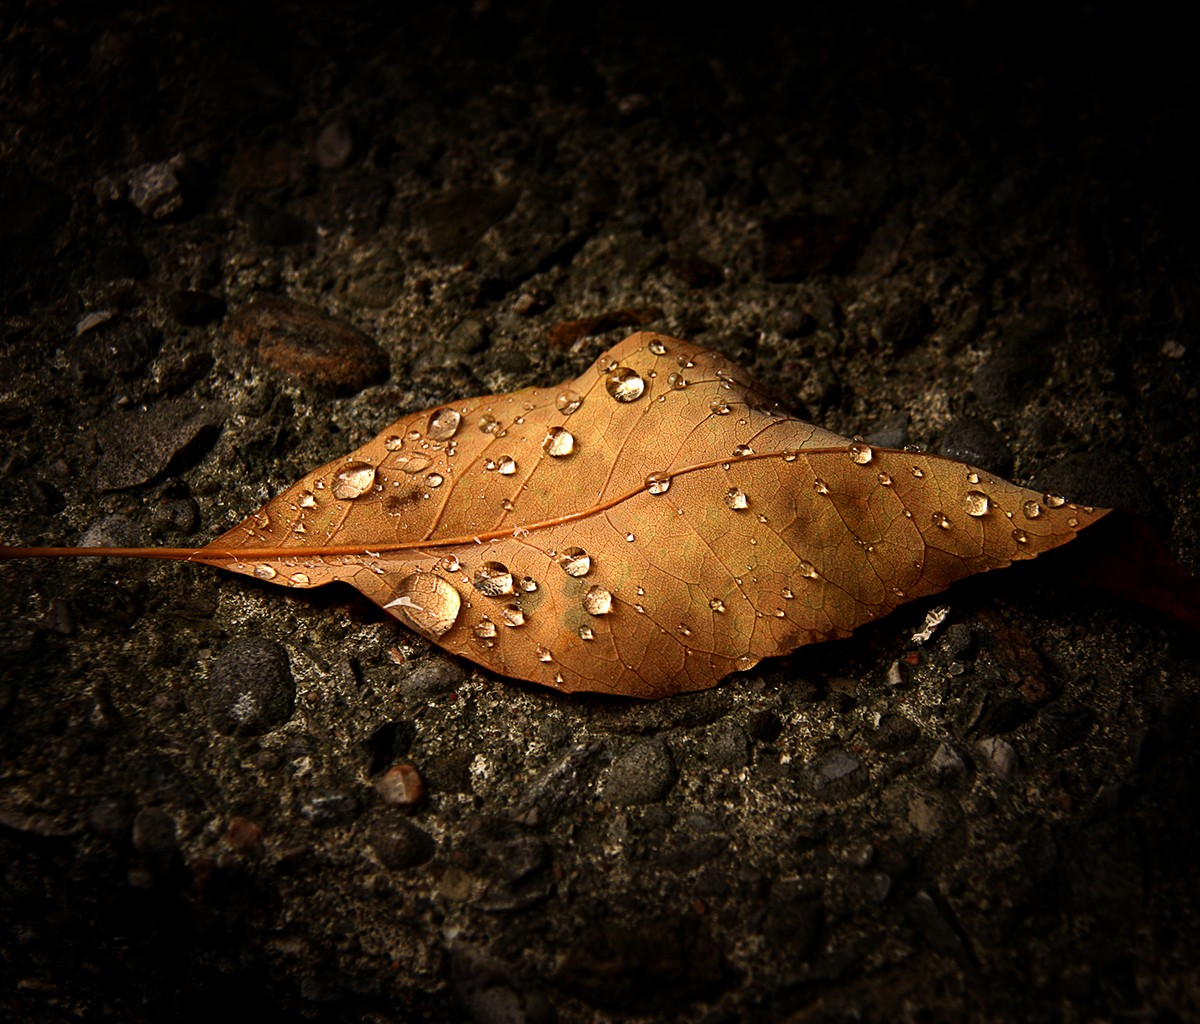 500px Photo ID: 83639037 - Raindrops on Brown Leaf